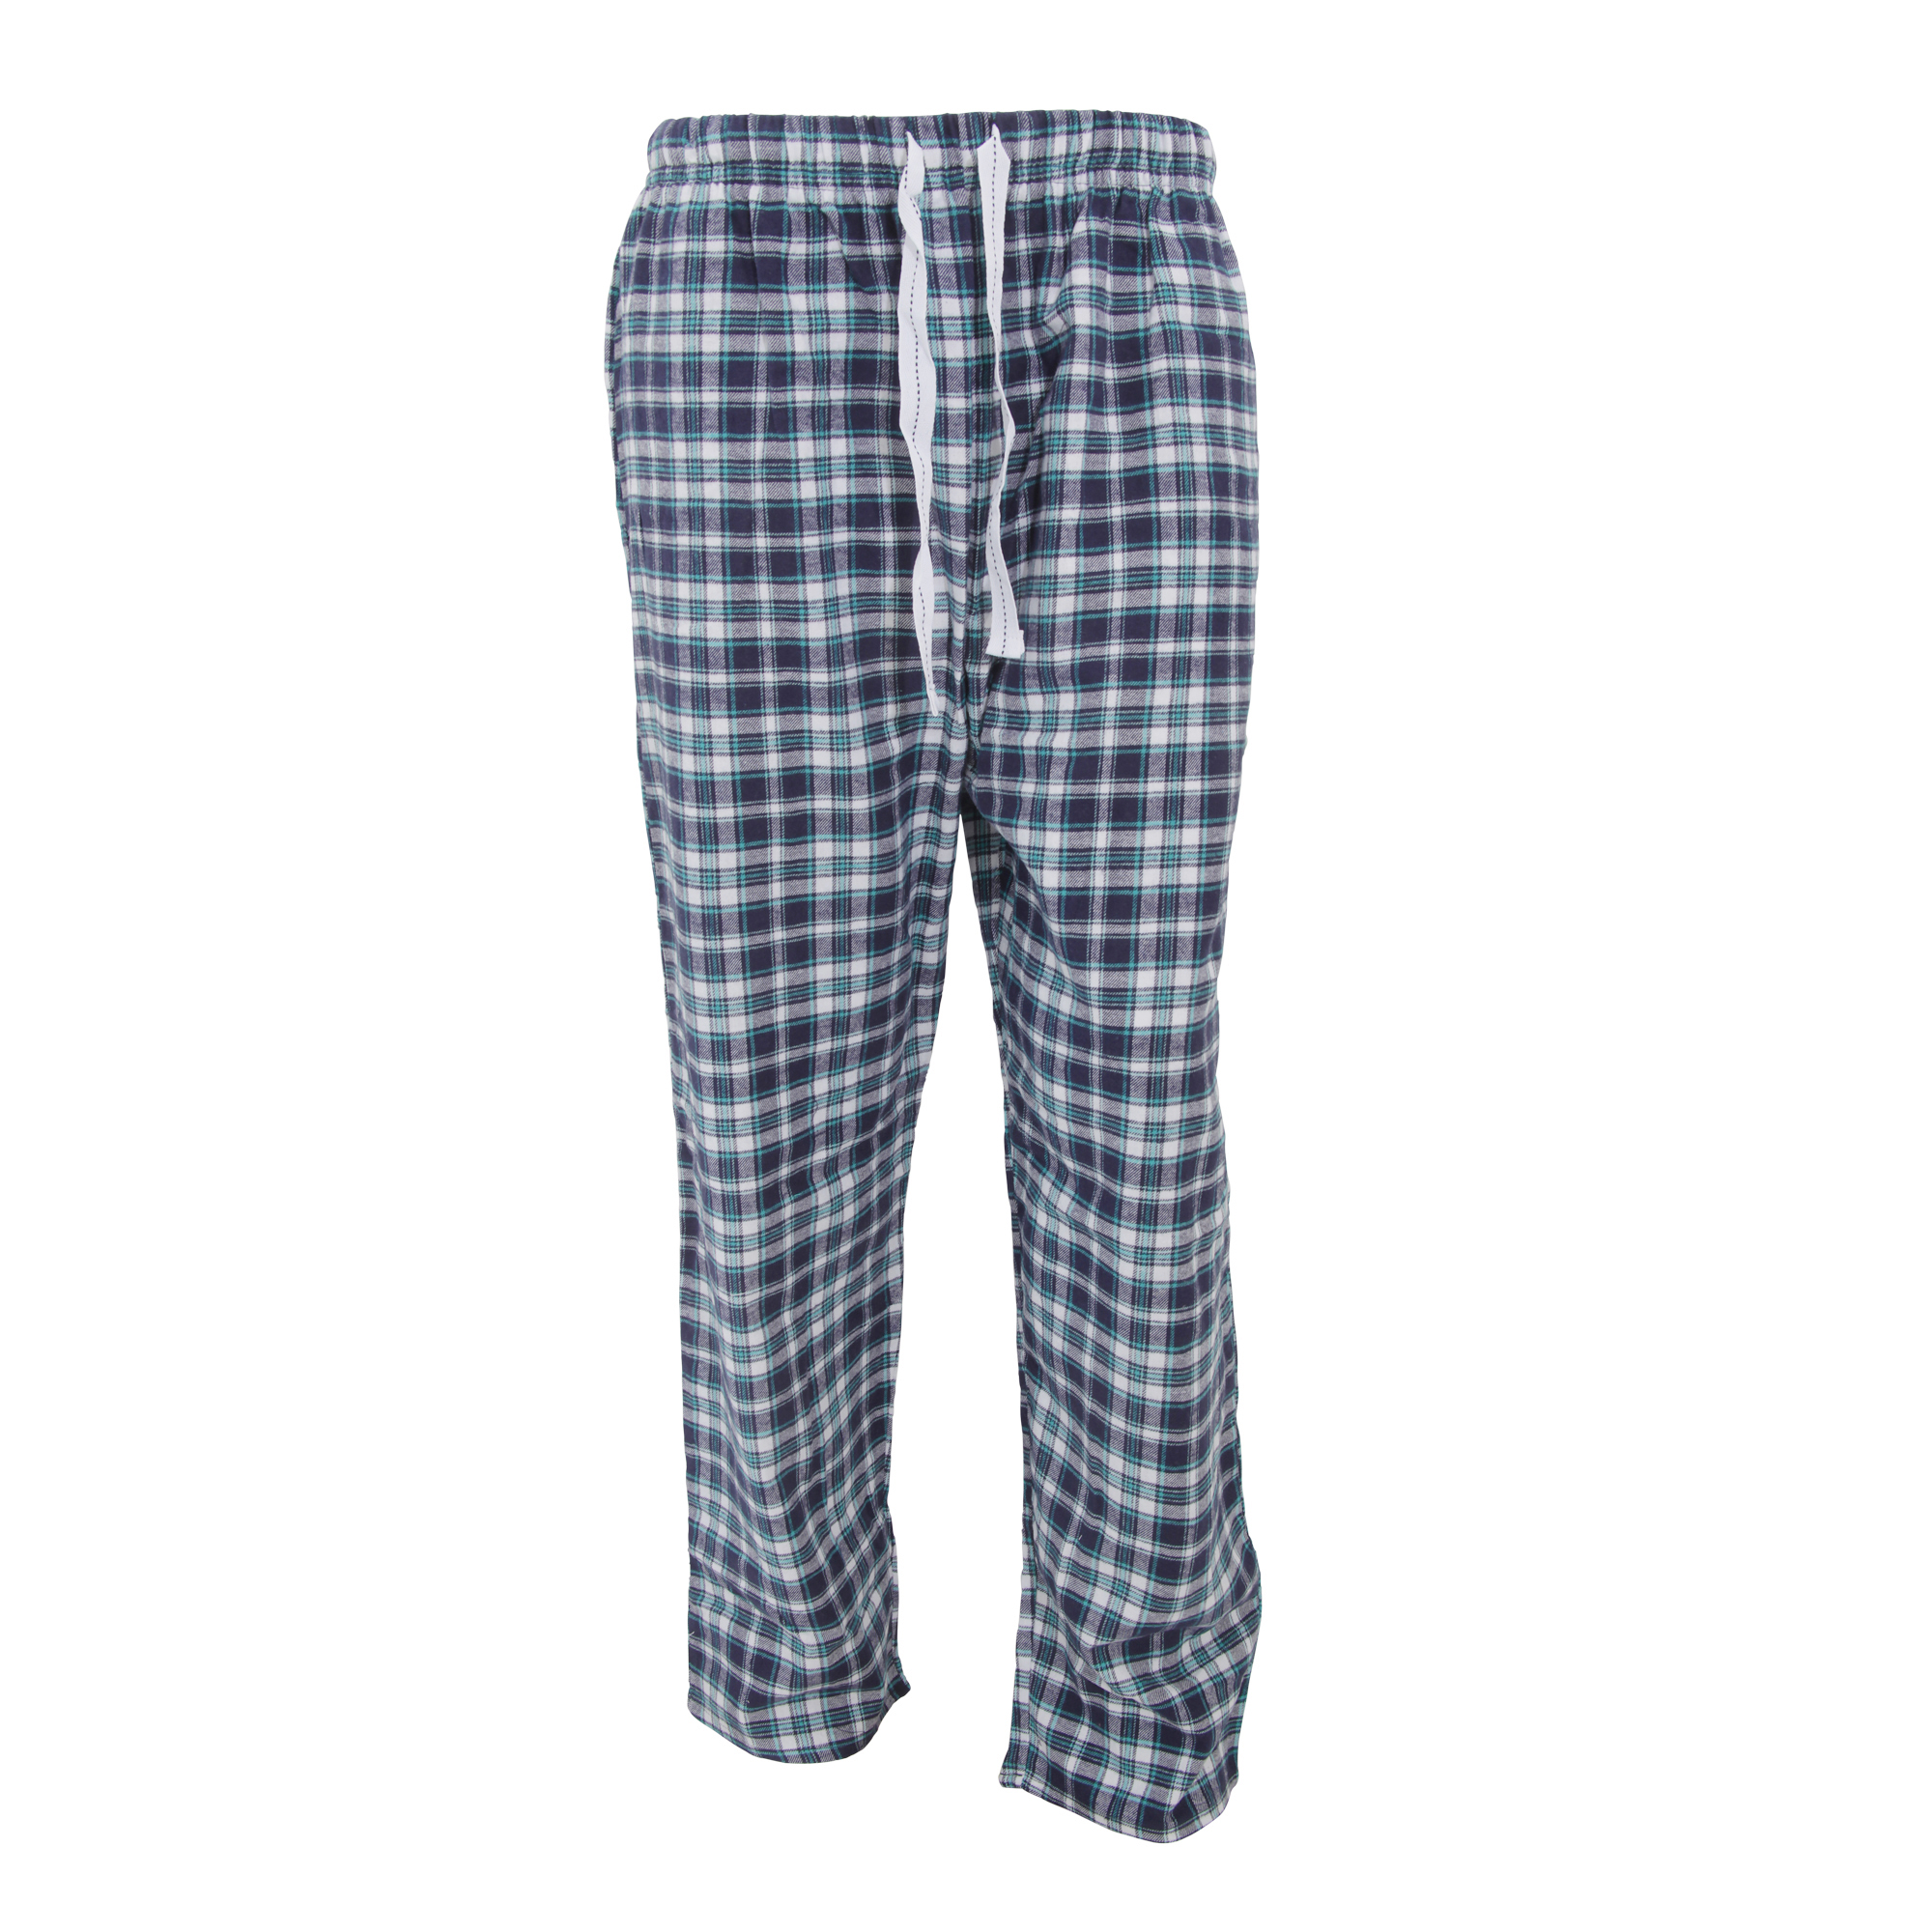 Find great deals on Mens Flannel Pajama Bottoms at Kohl's today! Sponsored Links Outside companies pay to advertise via these links when specific phrases and words are searched.